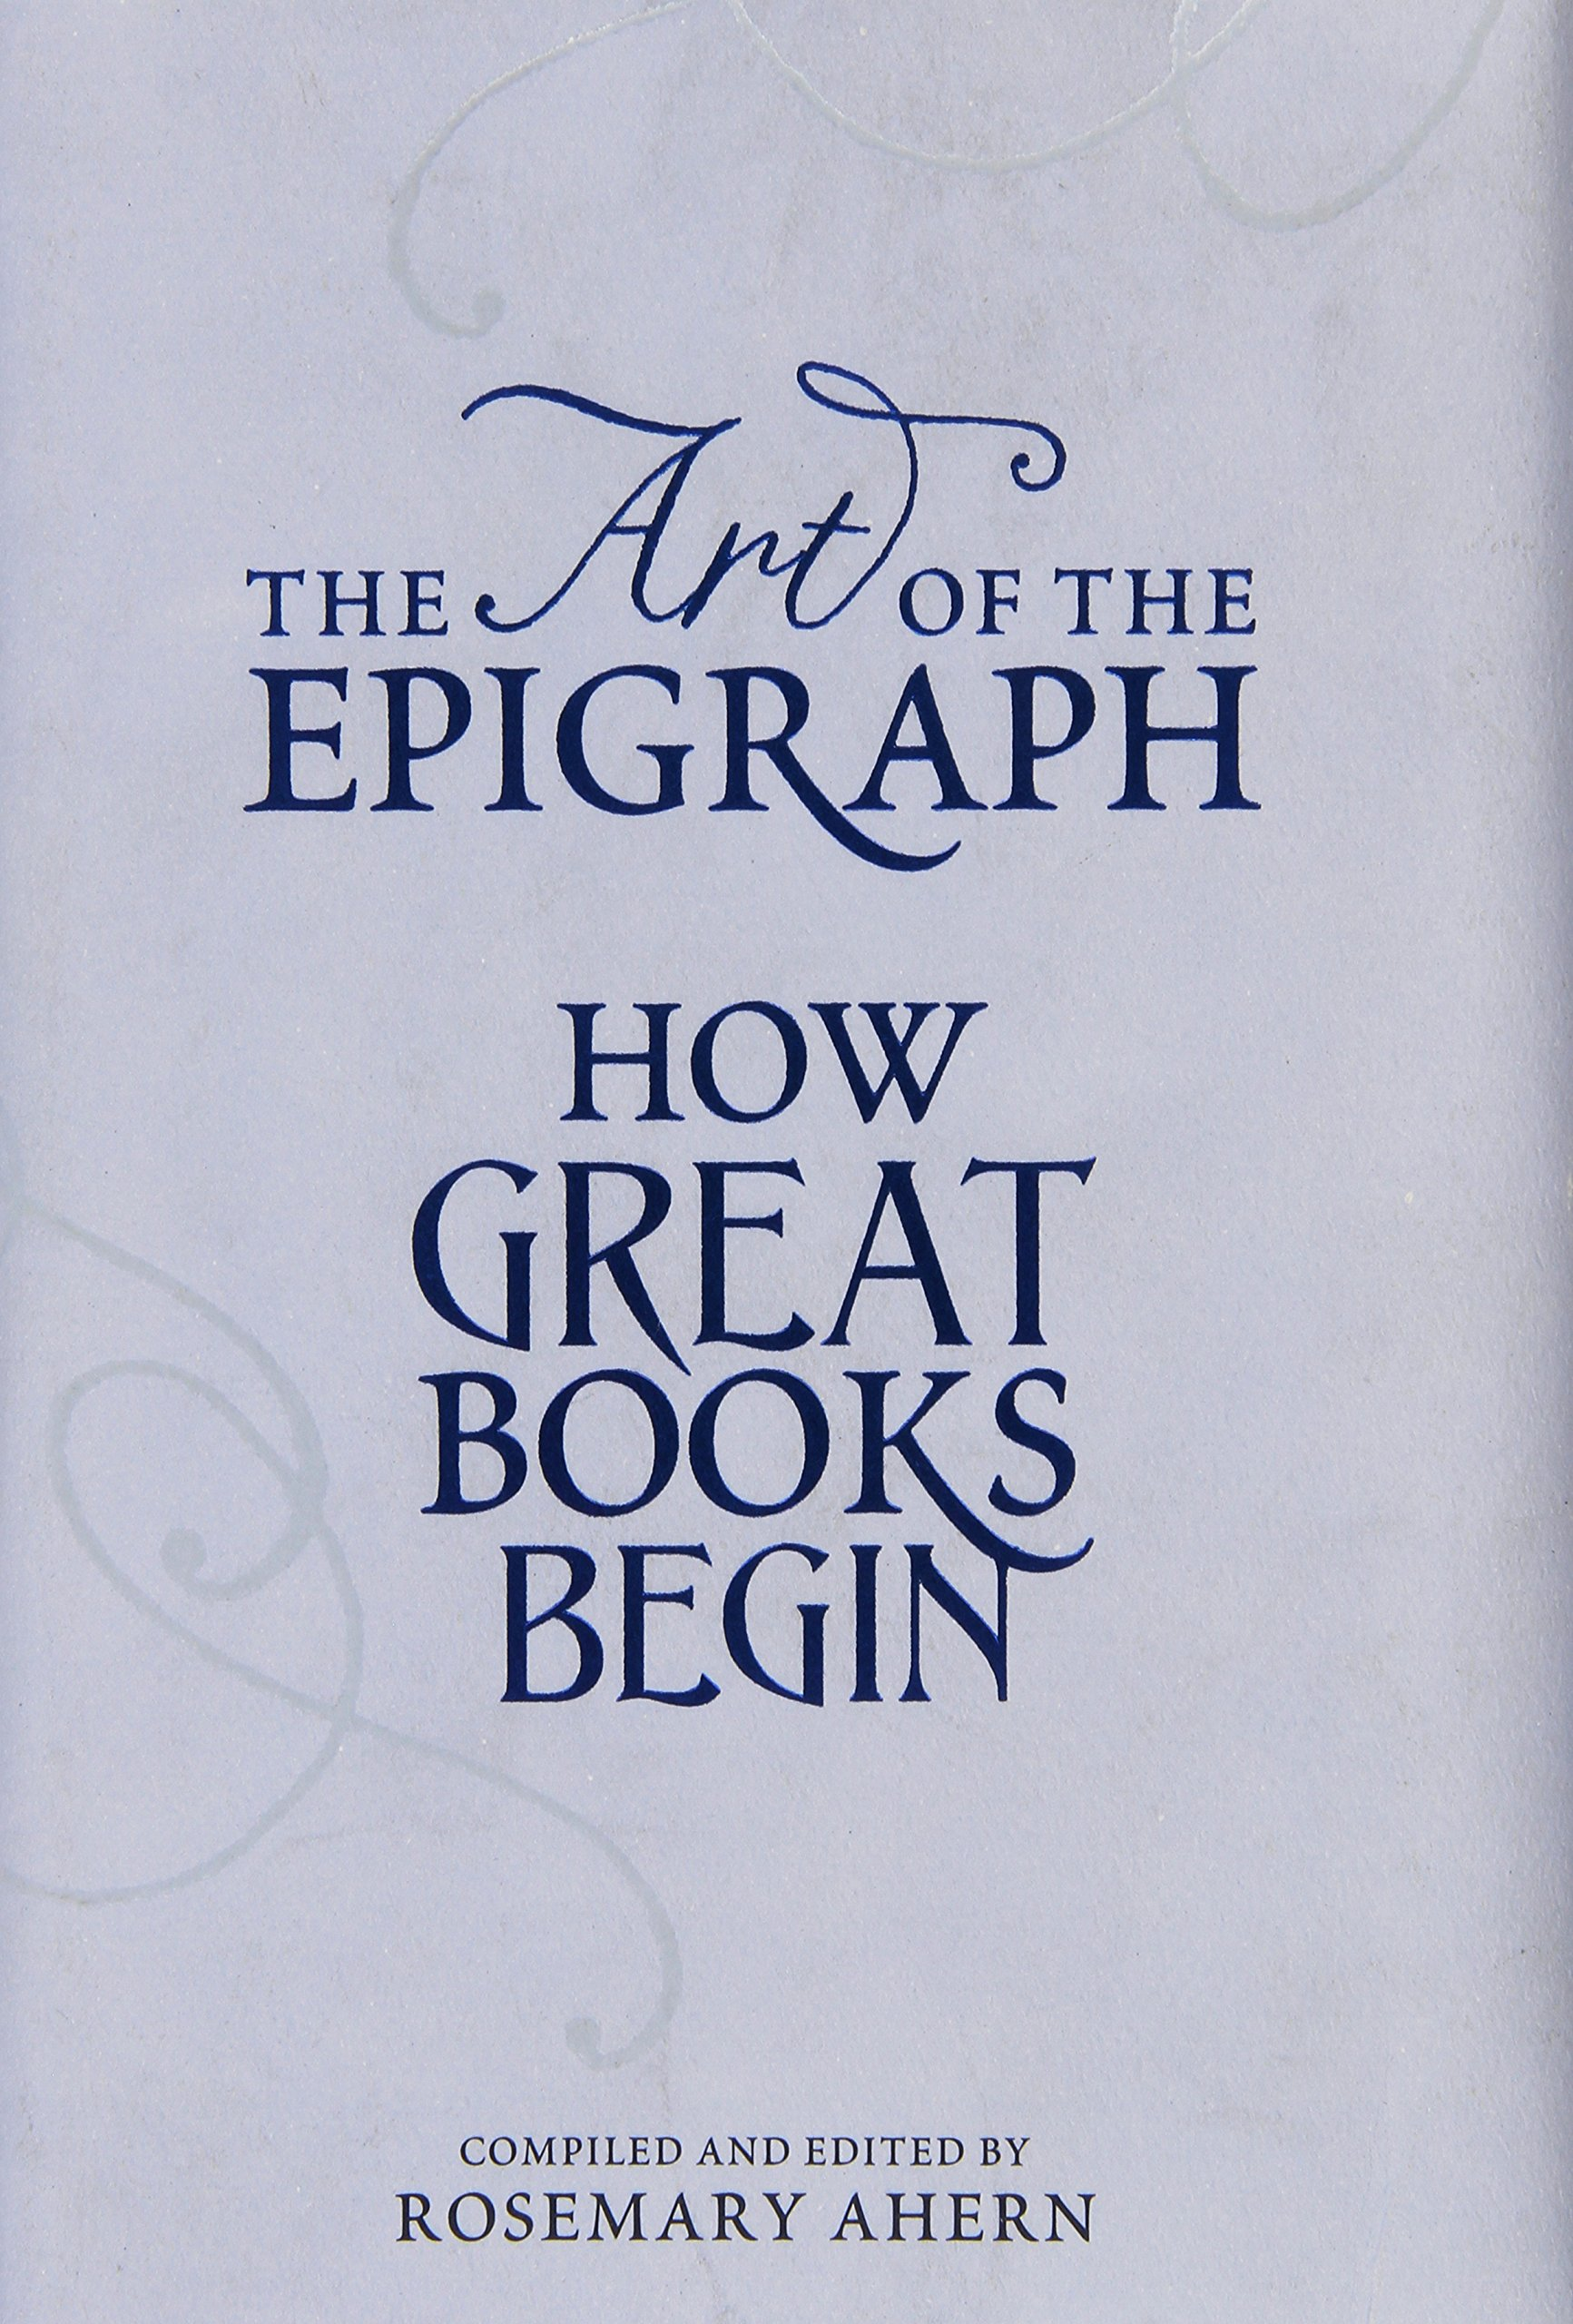 The Art Of The Epigraph: How Great Books Begin: Rosemary Ahern:  9781451693249: Amazon: Books